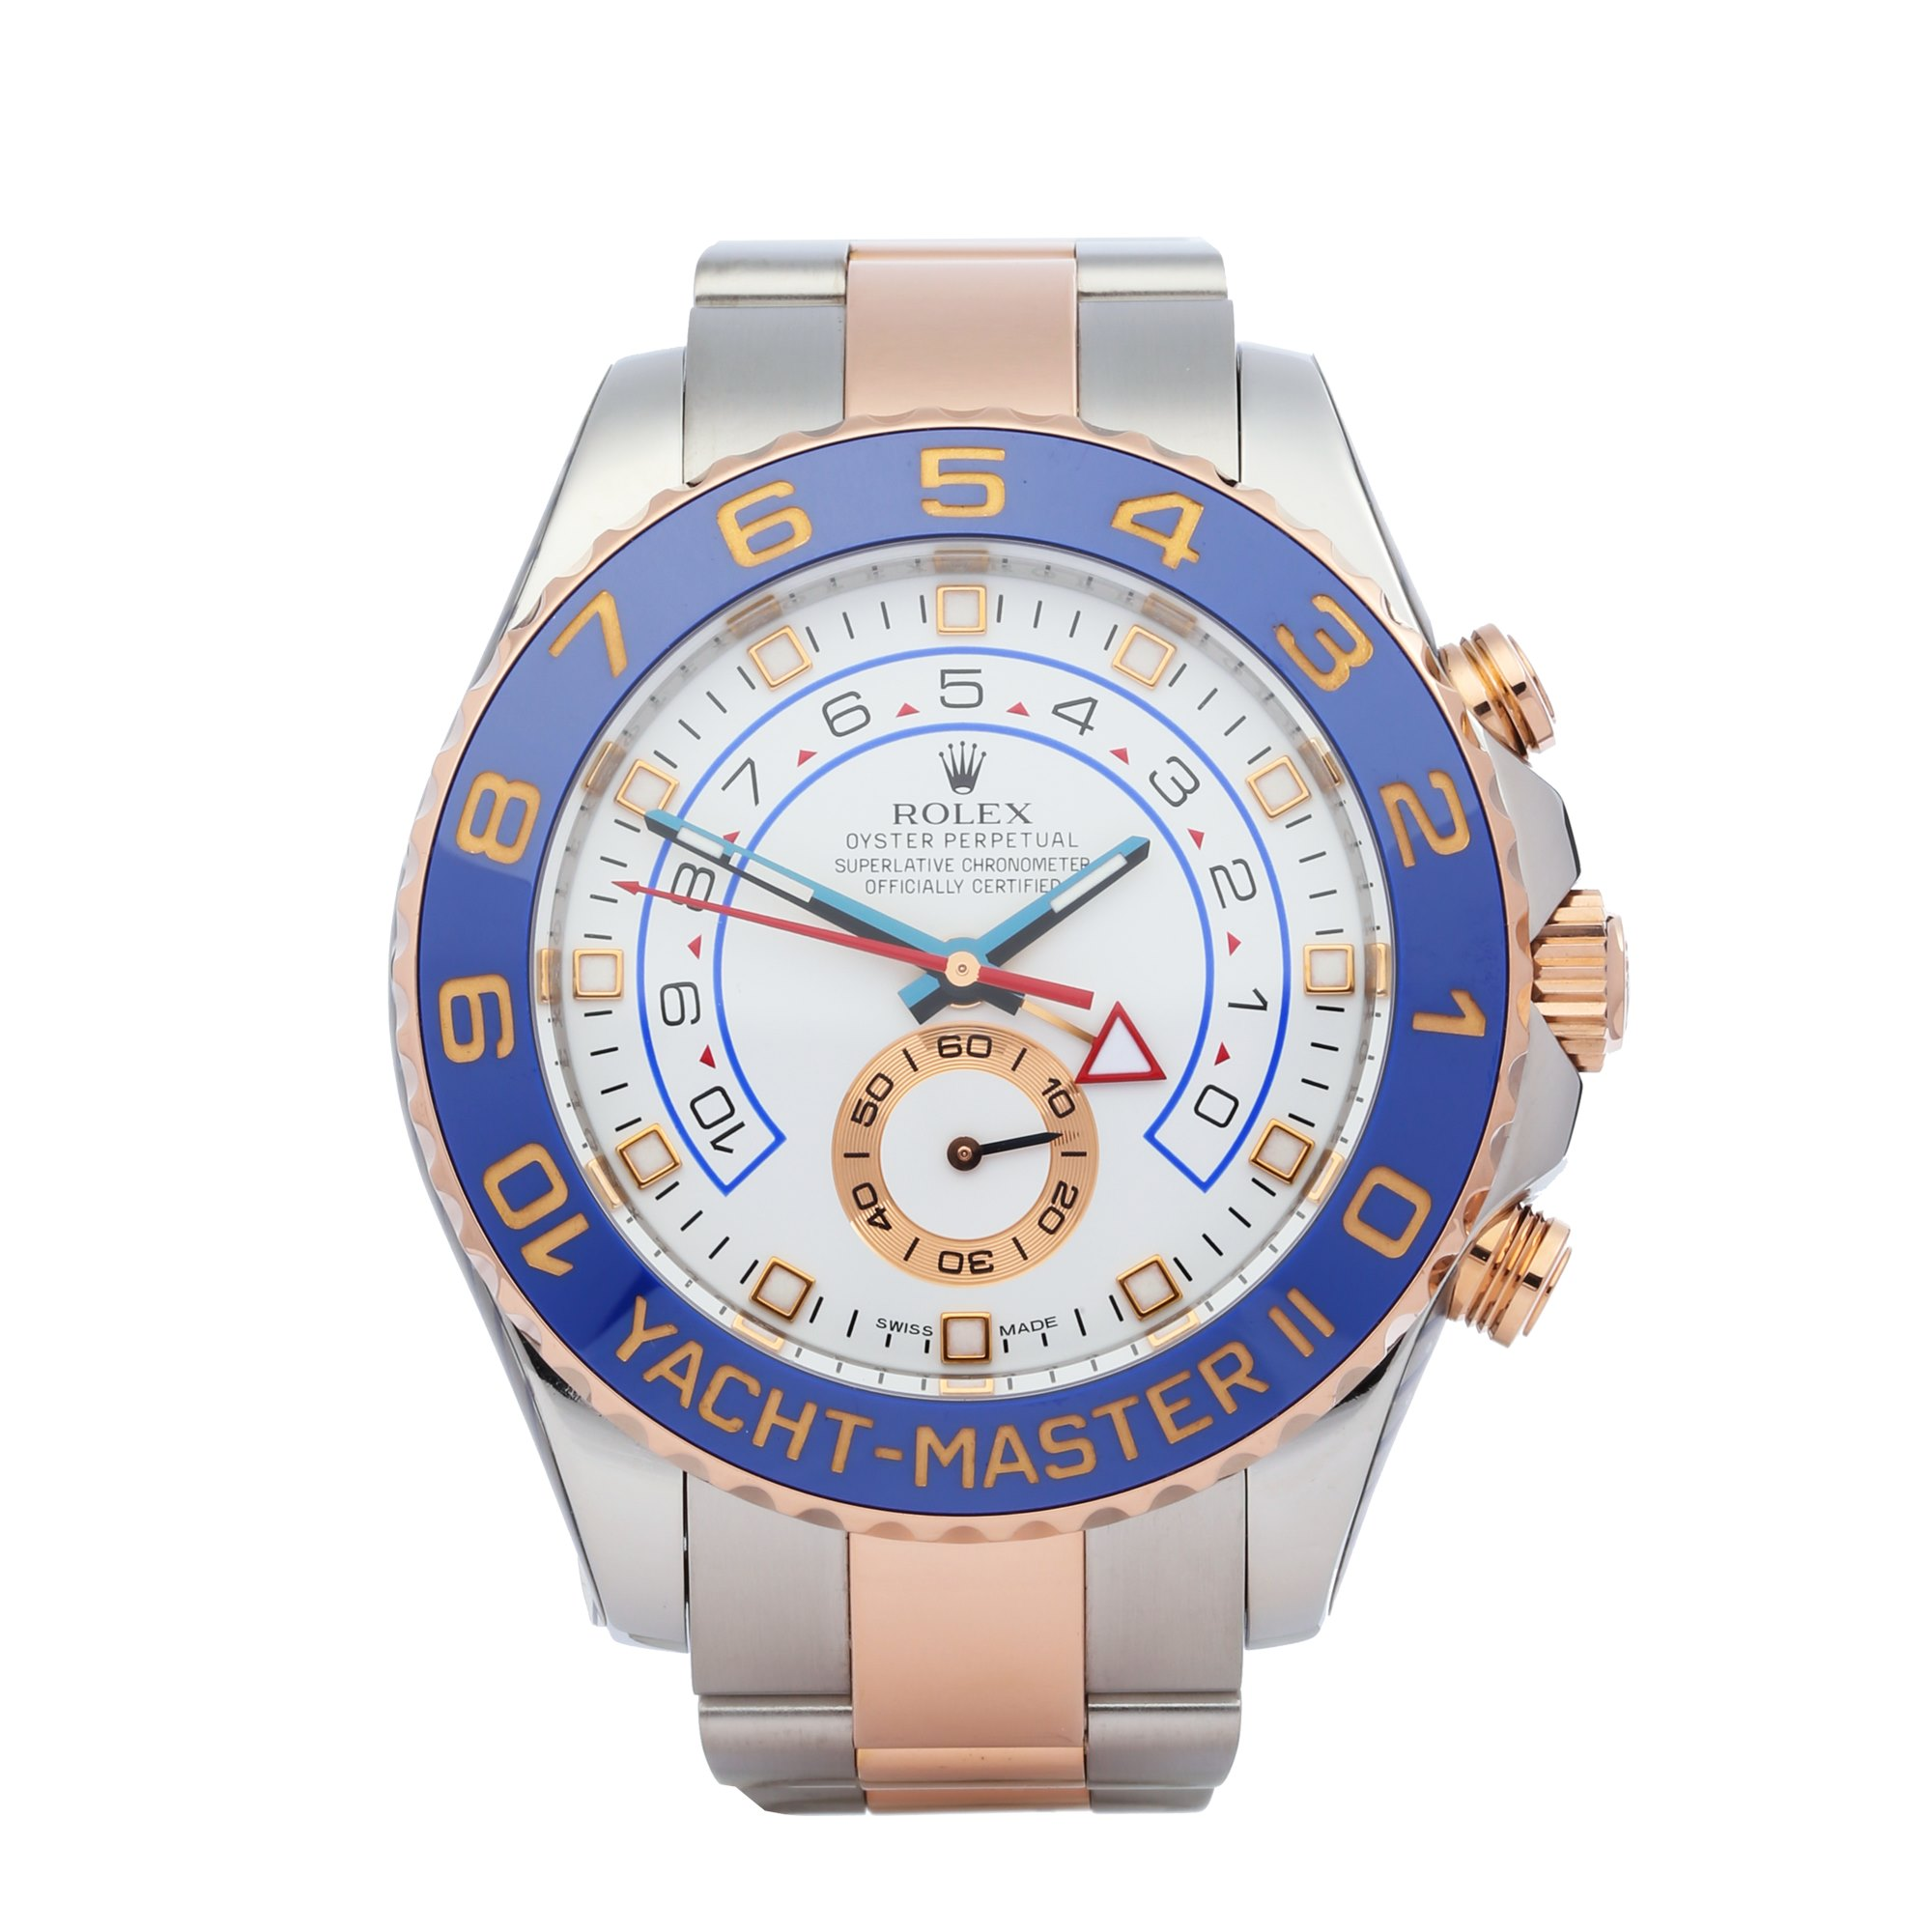 Rolex Yacht-Master II 18K Rose Gold & Stainless Steel 116681